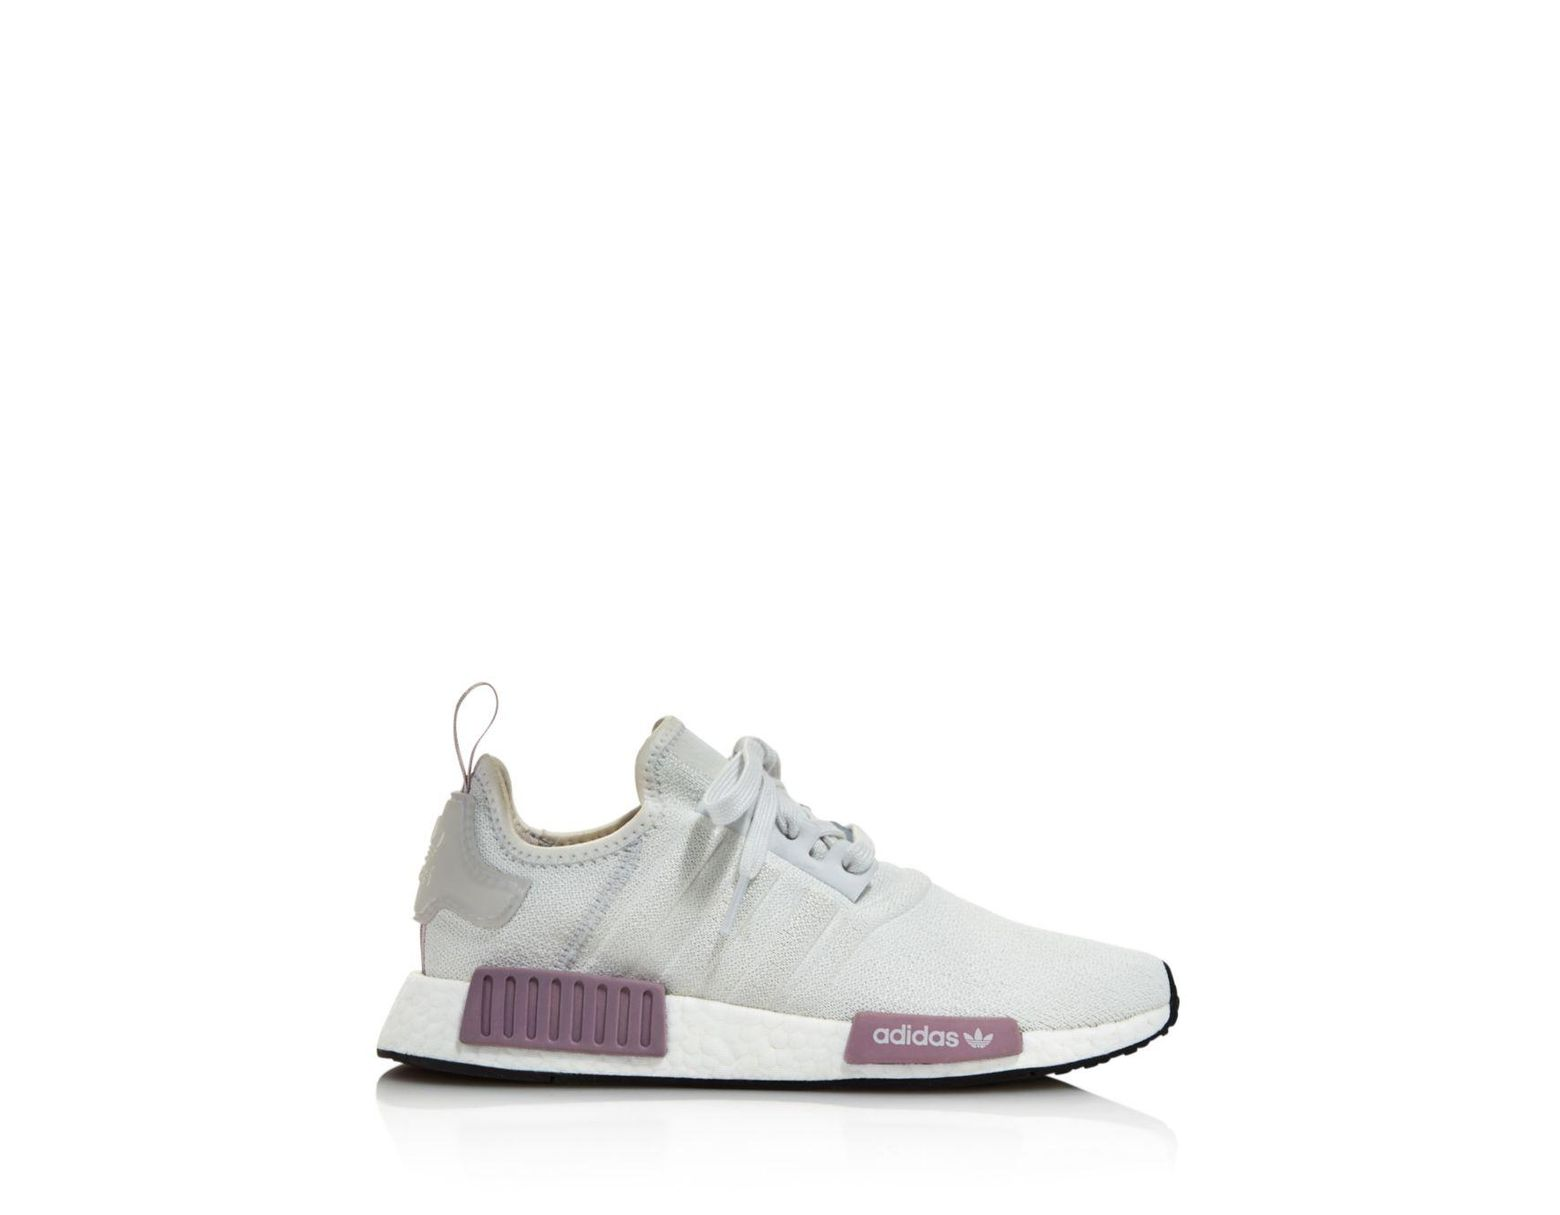 48a55c812b472 Lyst - adidas Women s Nmd R1 Knit Lace Up Sneakers in Gray